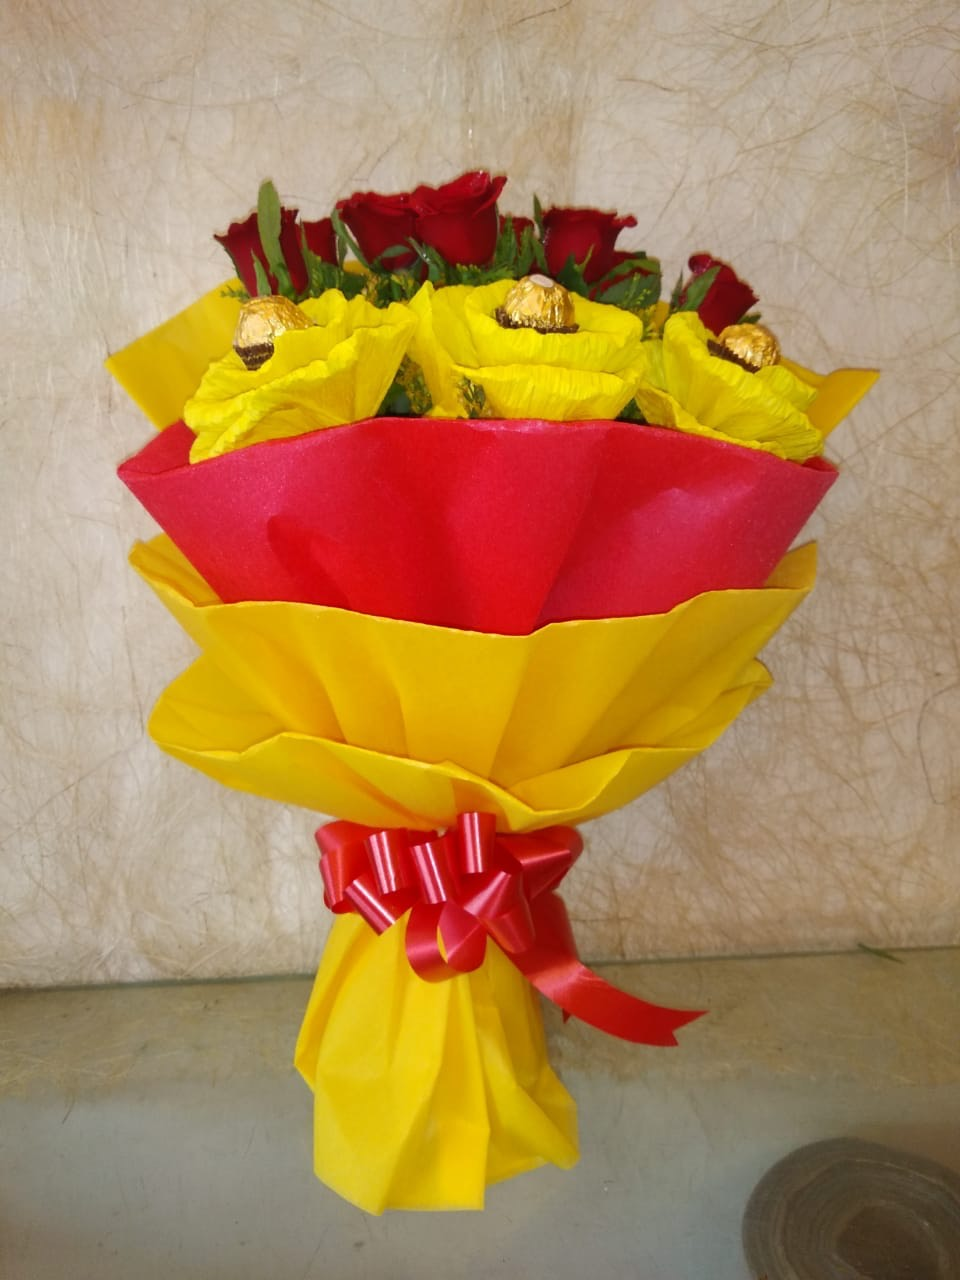 Flowers Delivery in Sector 40 GurgaonRed Roses Ferrero Rocher Bunch